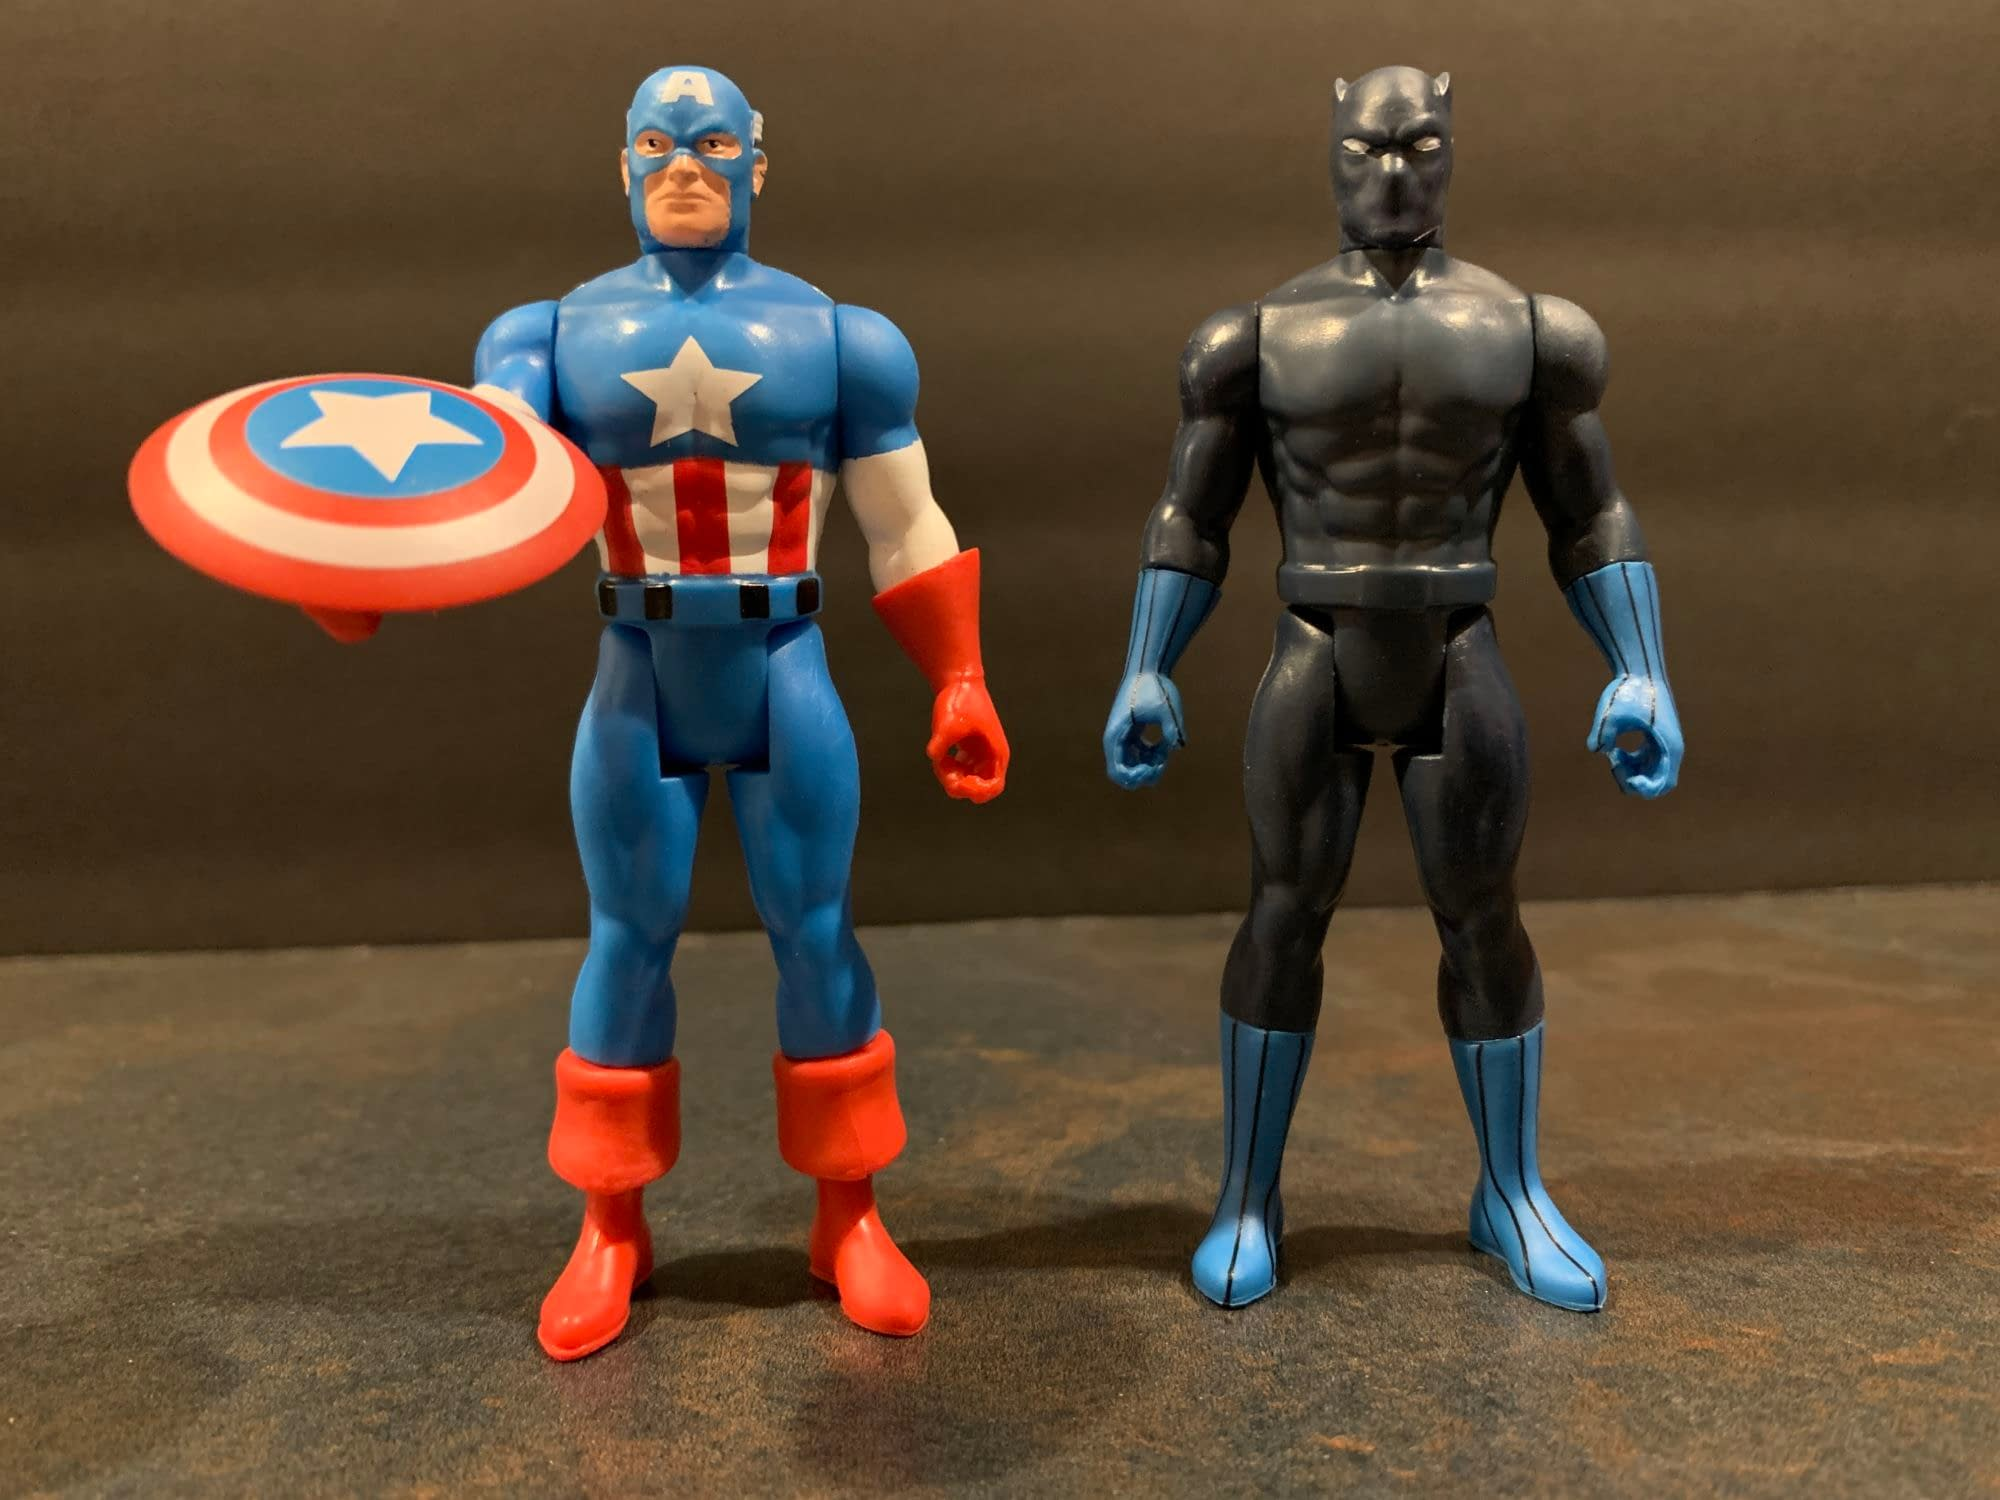 Let's Take A Look At Some New Hasbro Marvel Legends Figures